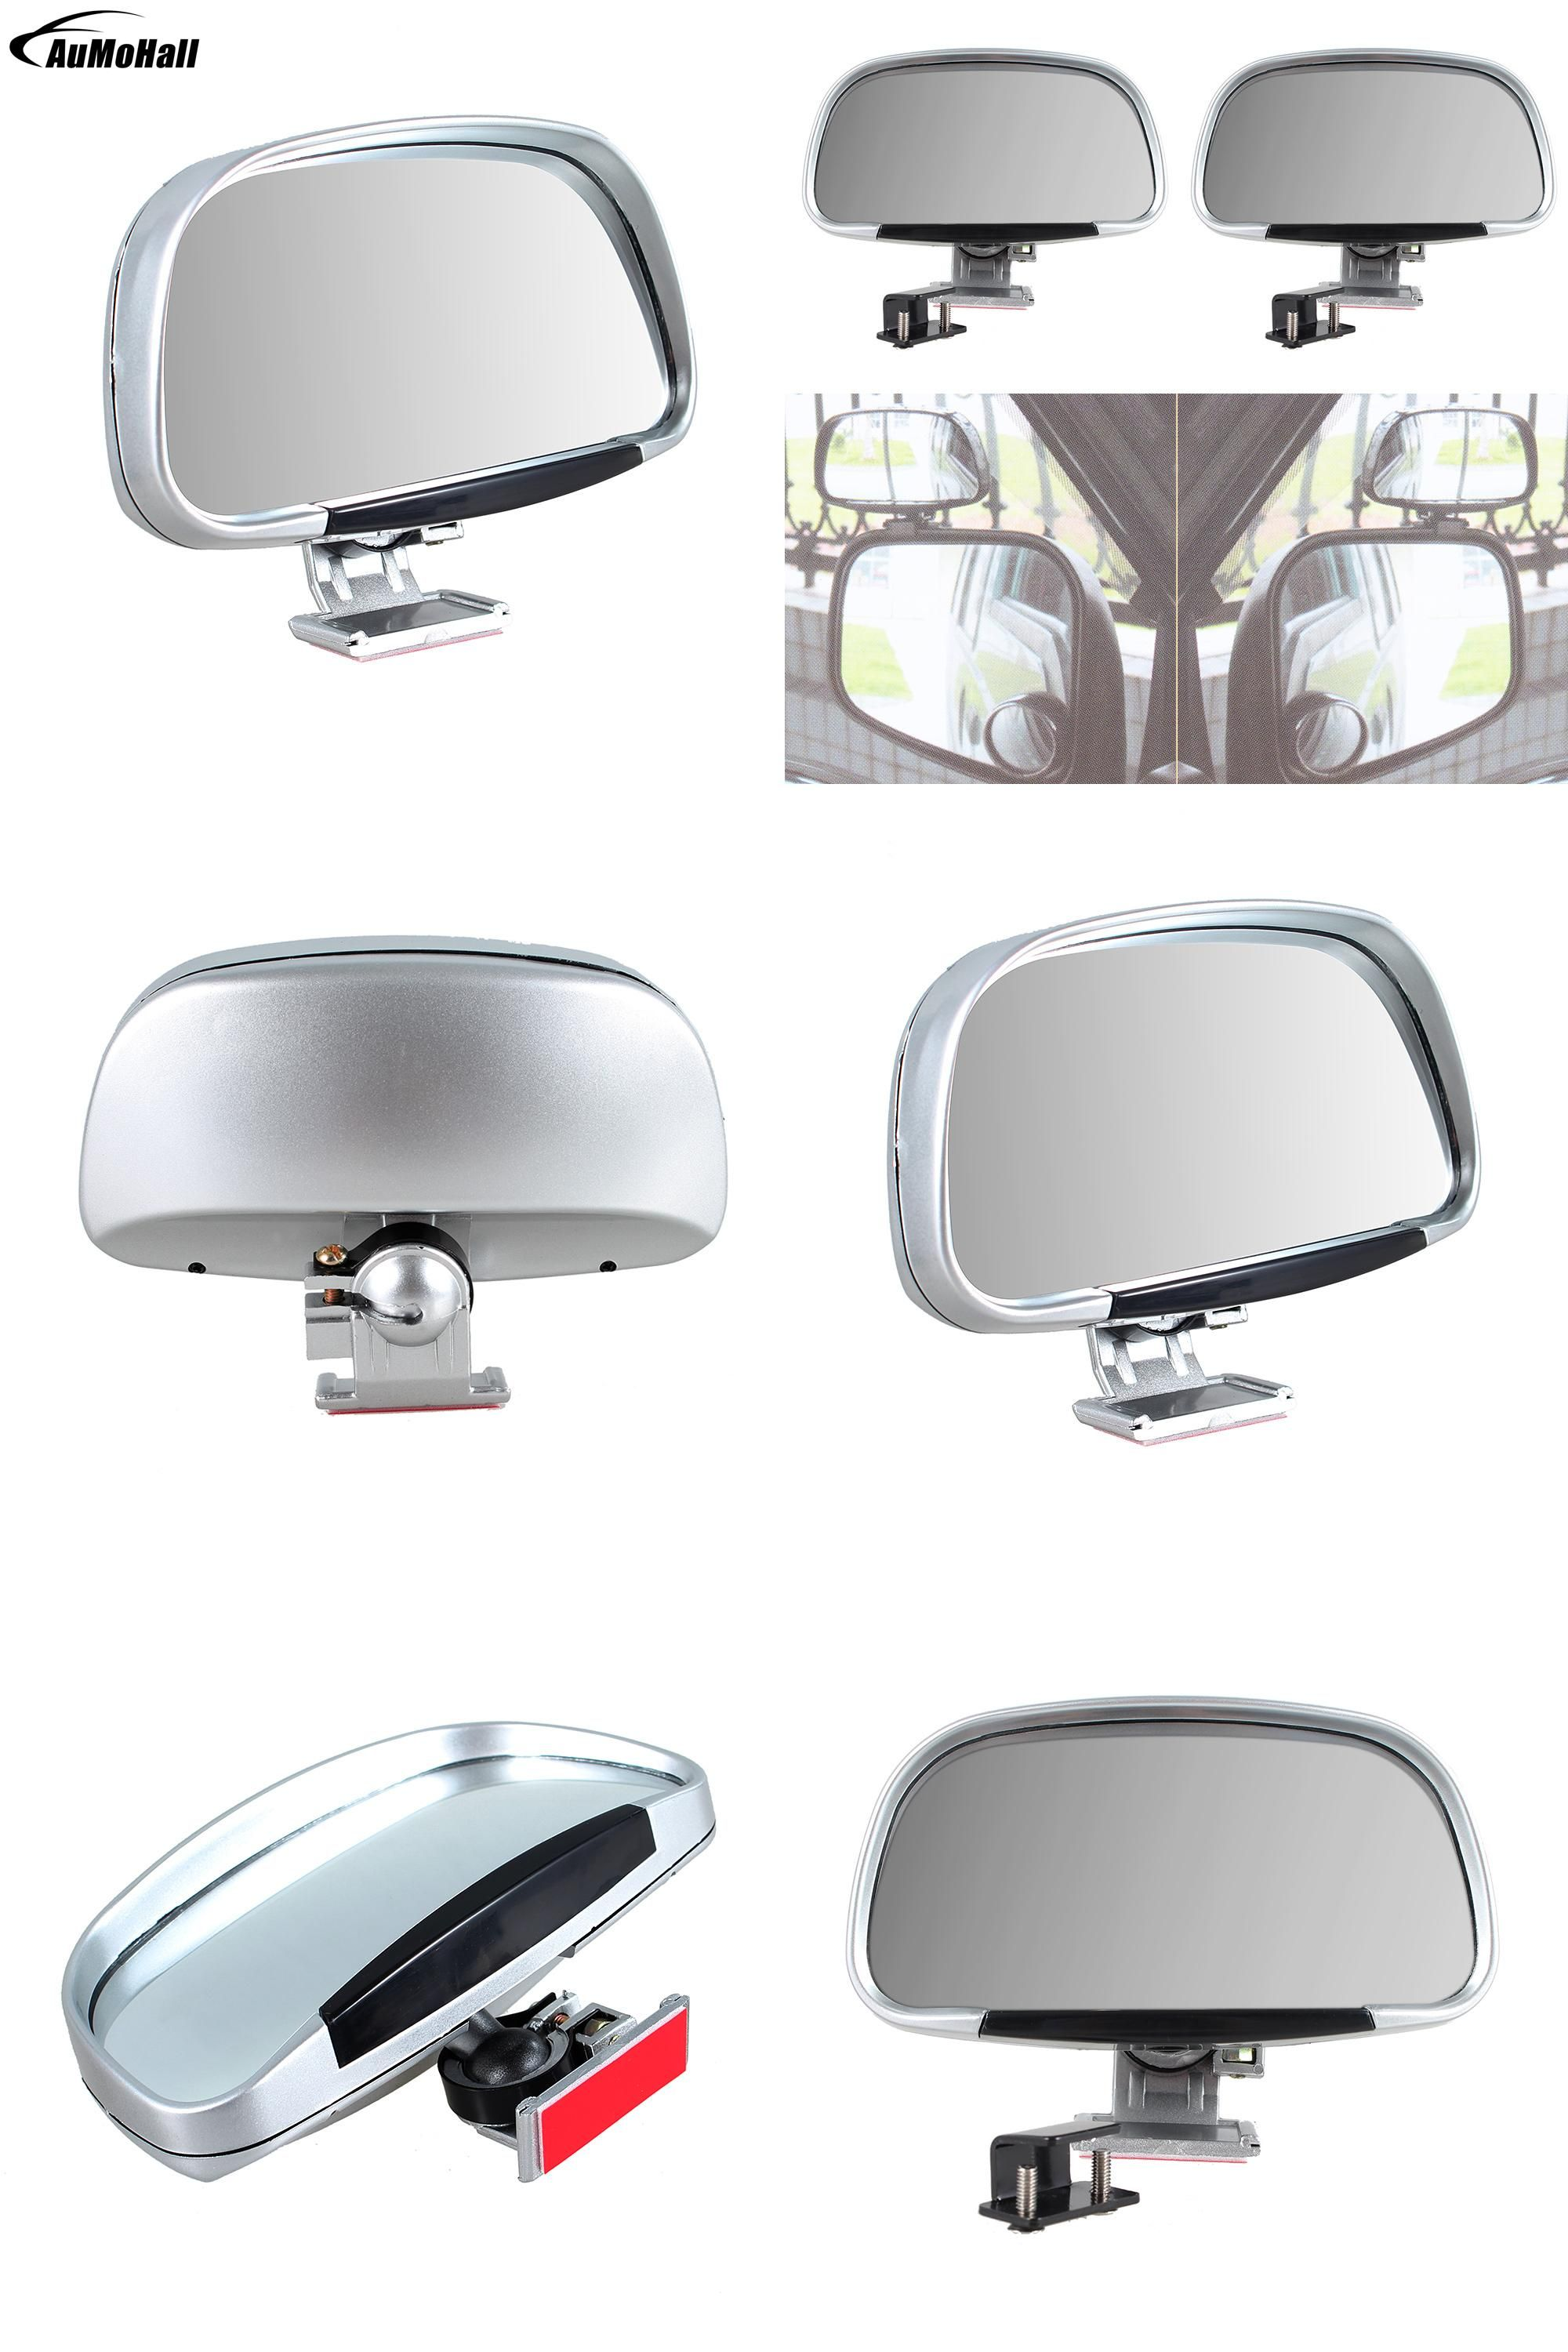 Visit to Buy] Silver Color Car Mirror Vehicle Blind Spot Mirror Car ...